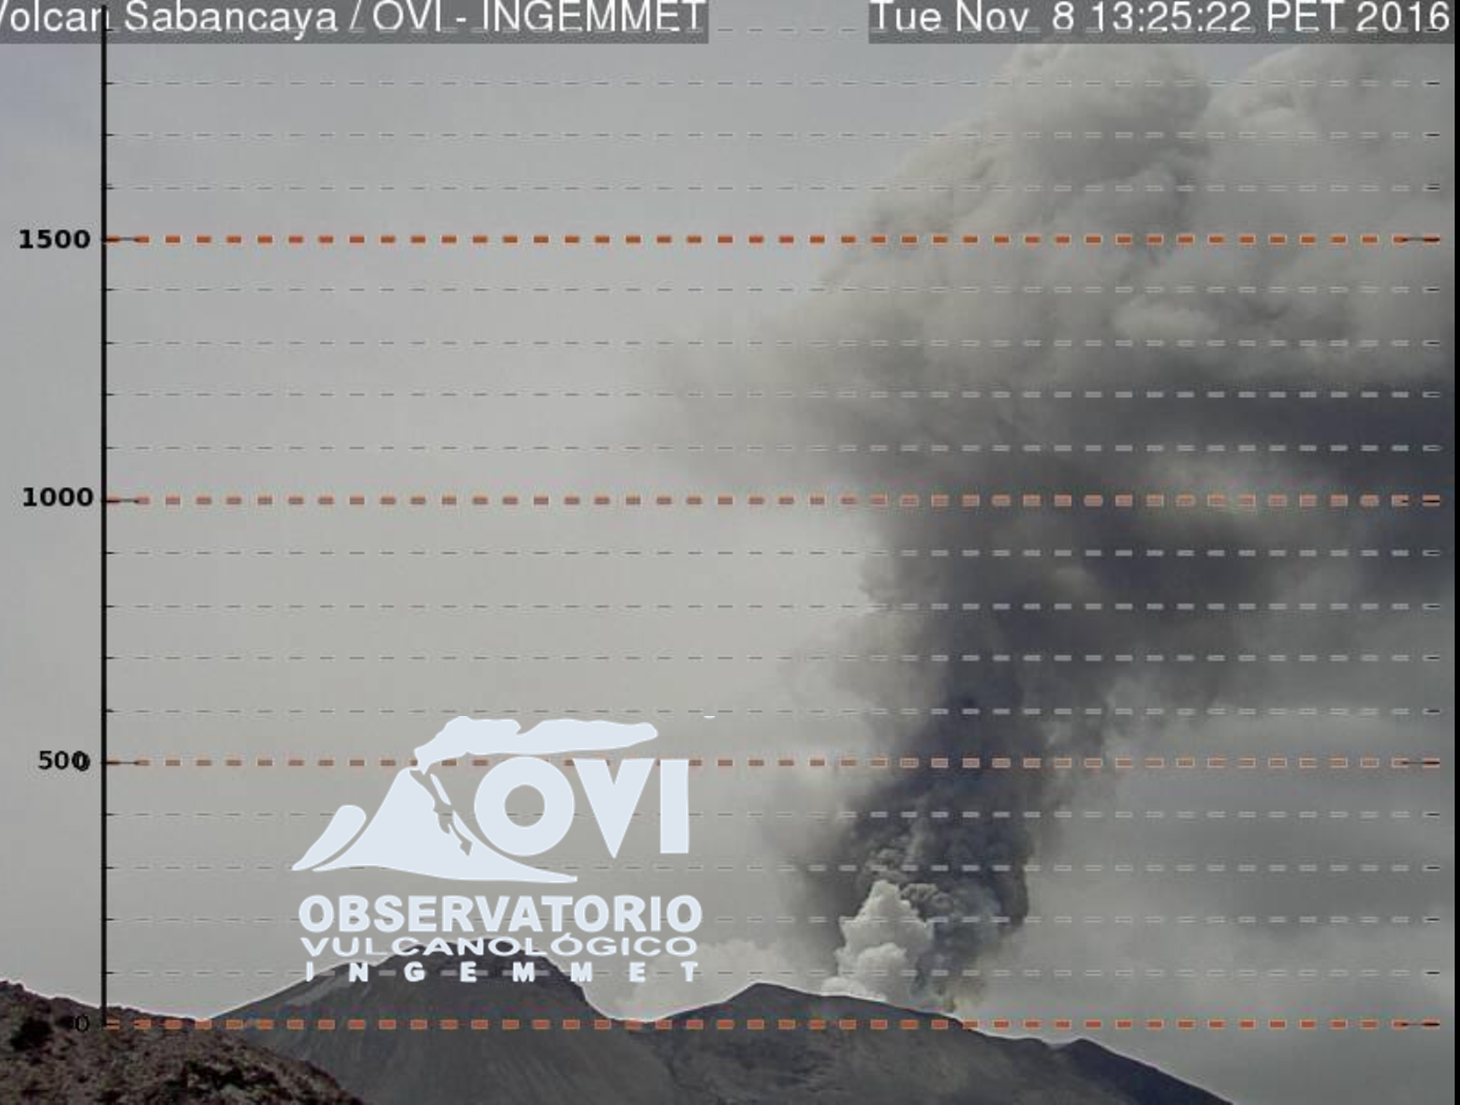 Sabancaya - the plume over 2,000 meters 11/08/2016 at 13:25 - photo OVI-INGEMMET